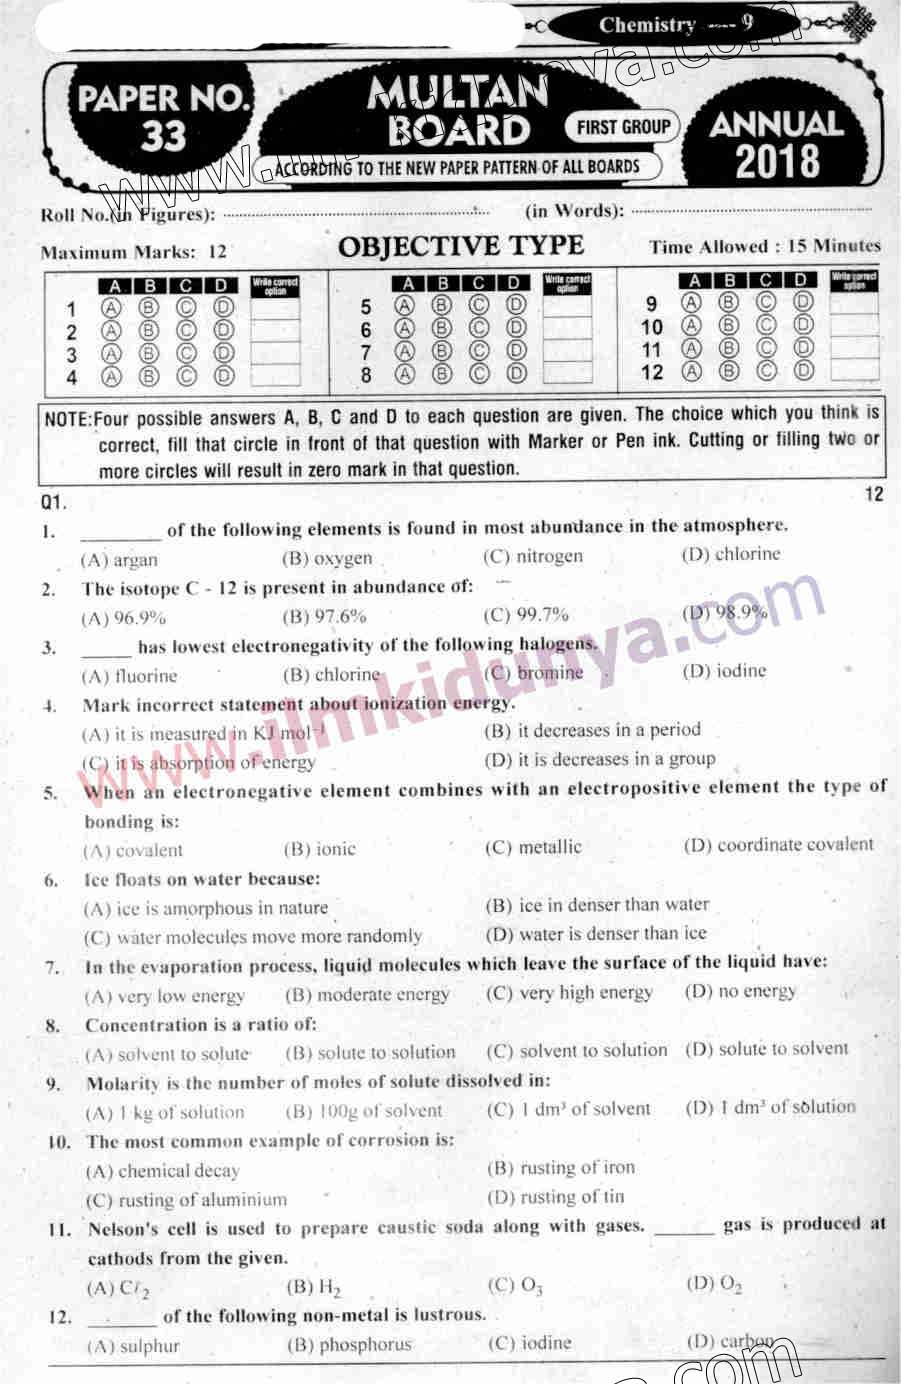 Past Papers 2018 Multan Board 9th Class Chemistry English